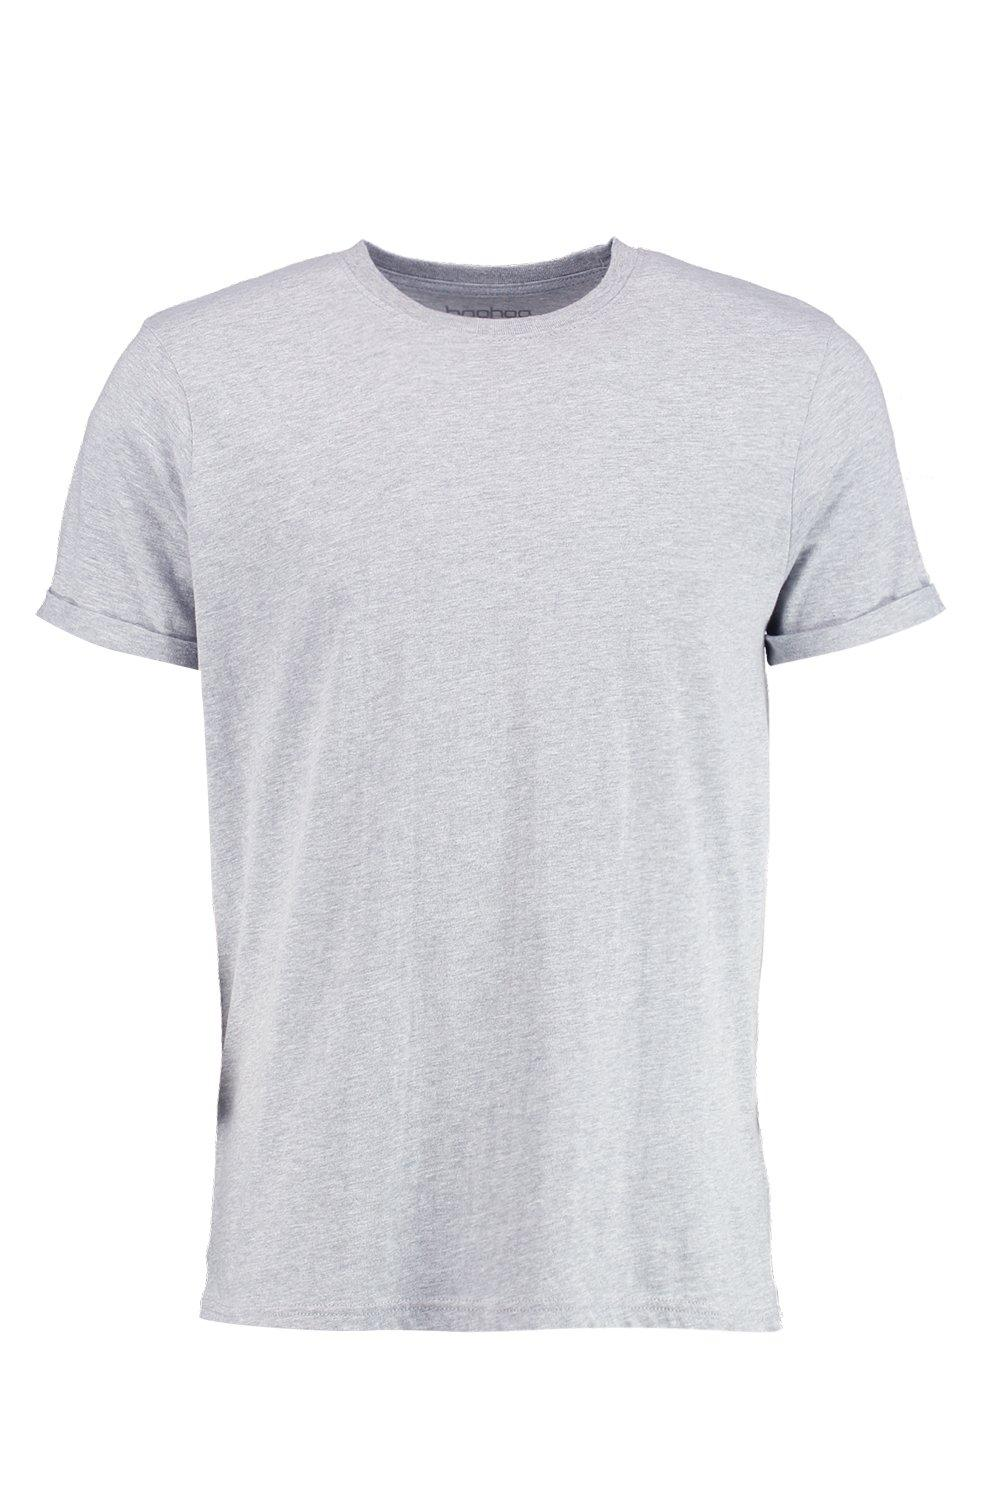 boohooMAN grey marl Crew Neck T-Shirt with Rolled Sleeves